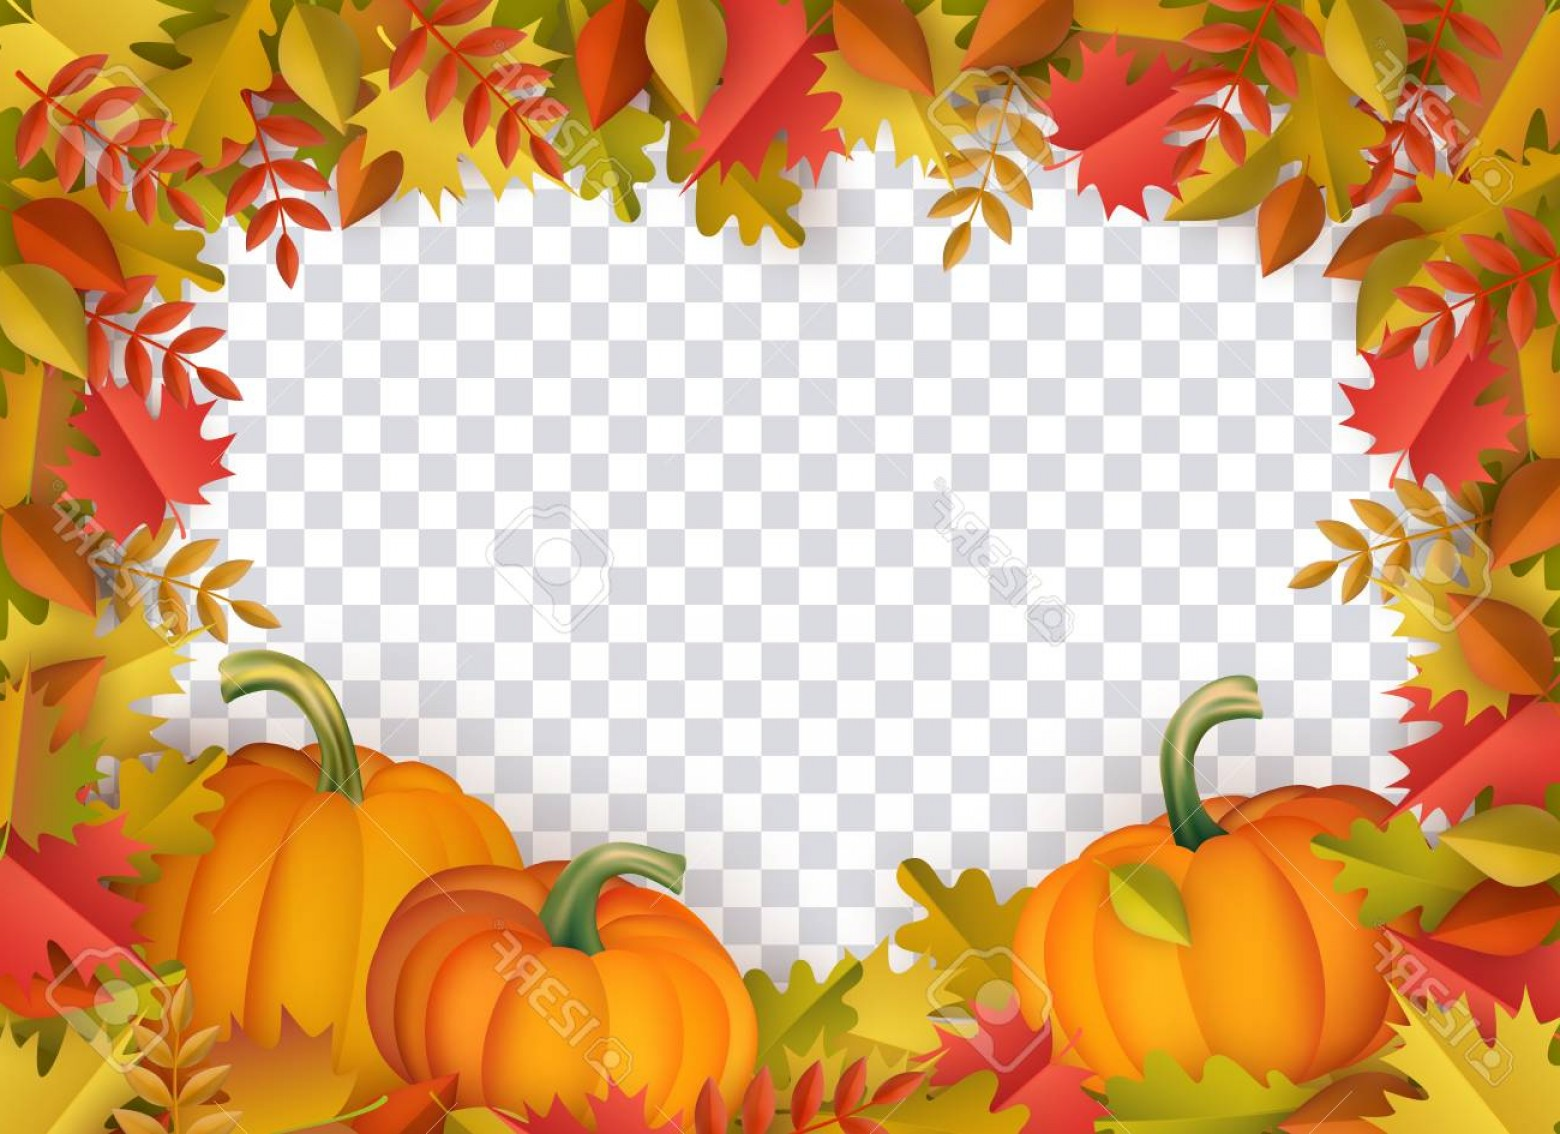 Thanksgiving Border Vector: Photostock Vector Autumn Leaves And Pumpkins Border Frame With Space Text On Transparent Background Seasonal Floral Ma